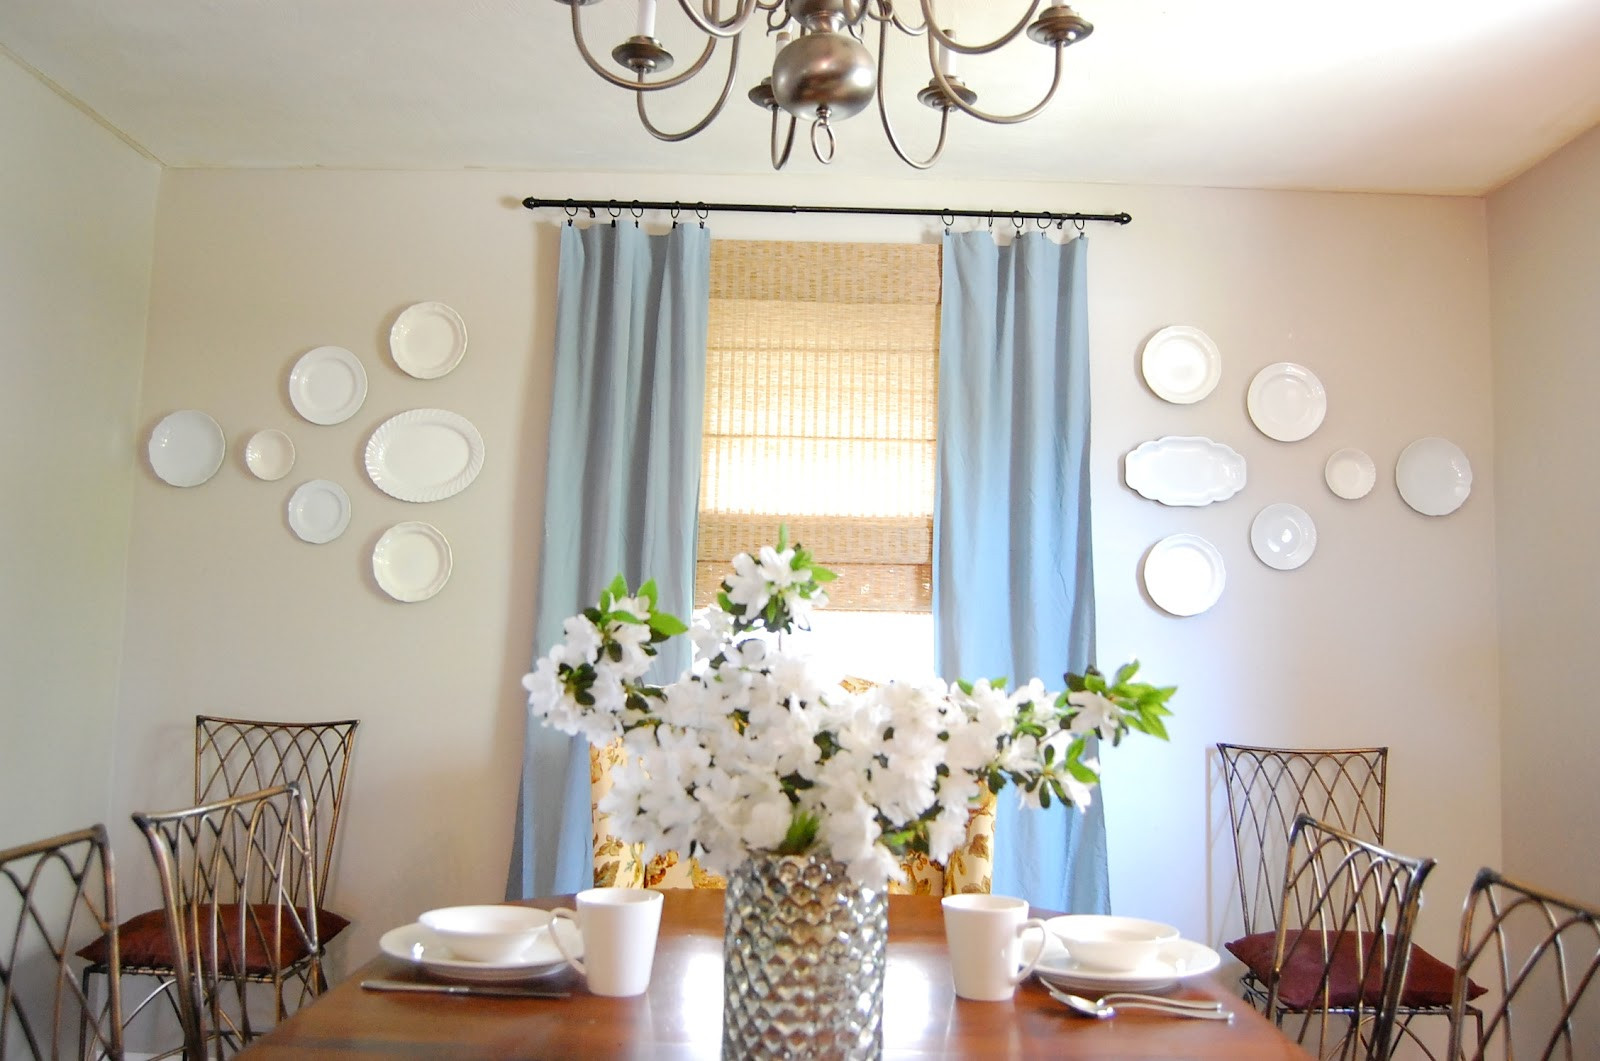 Best ideas about Dining Room Wall Art . Save or Pin Dining Room Plate Wall DIY Show f ™ DIY Decorating Now.